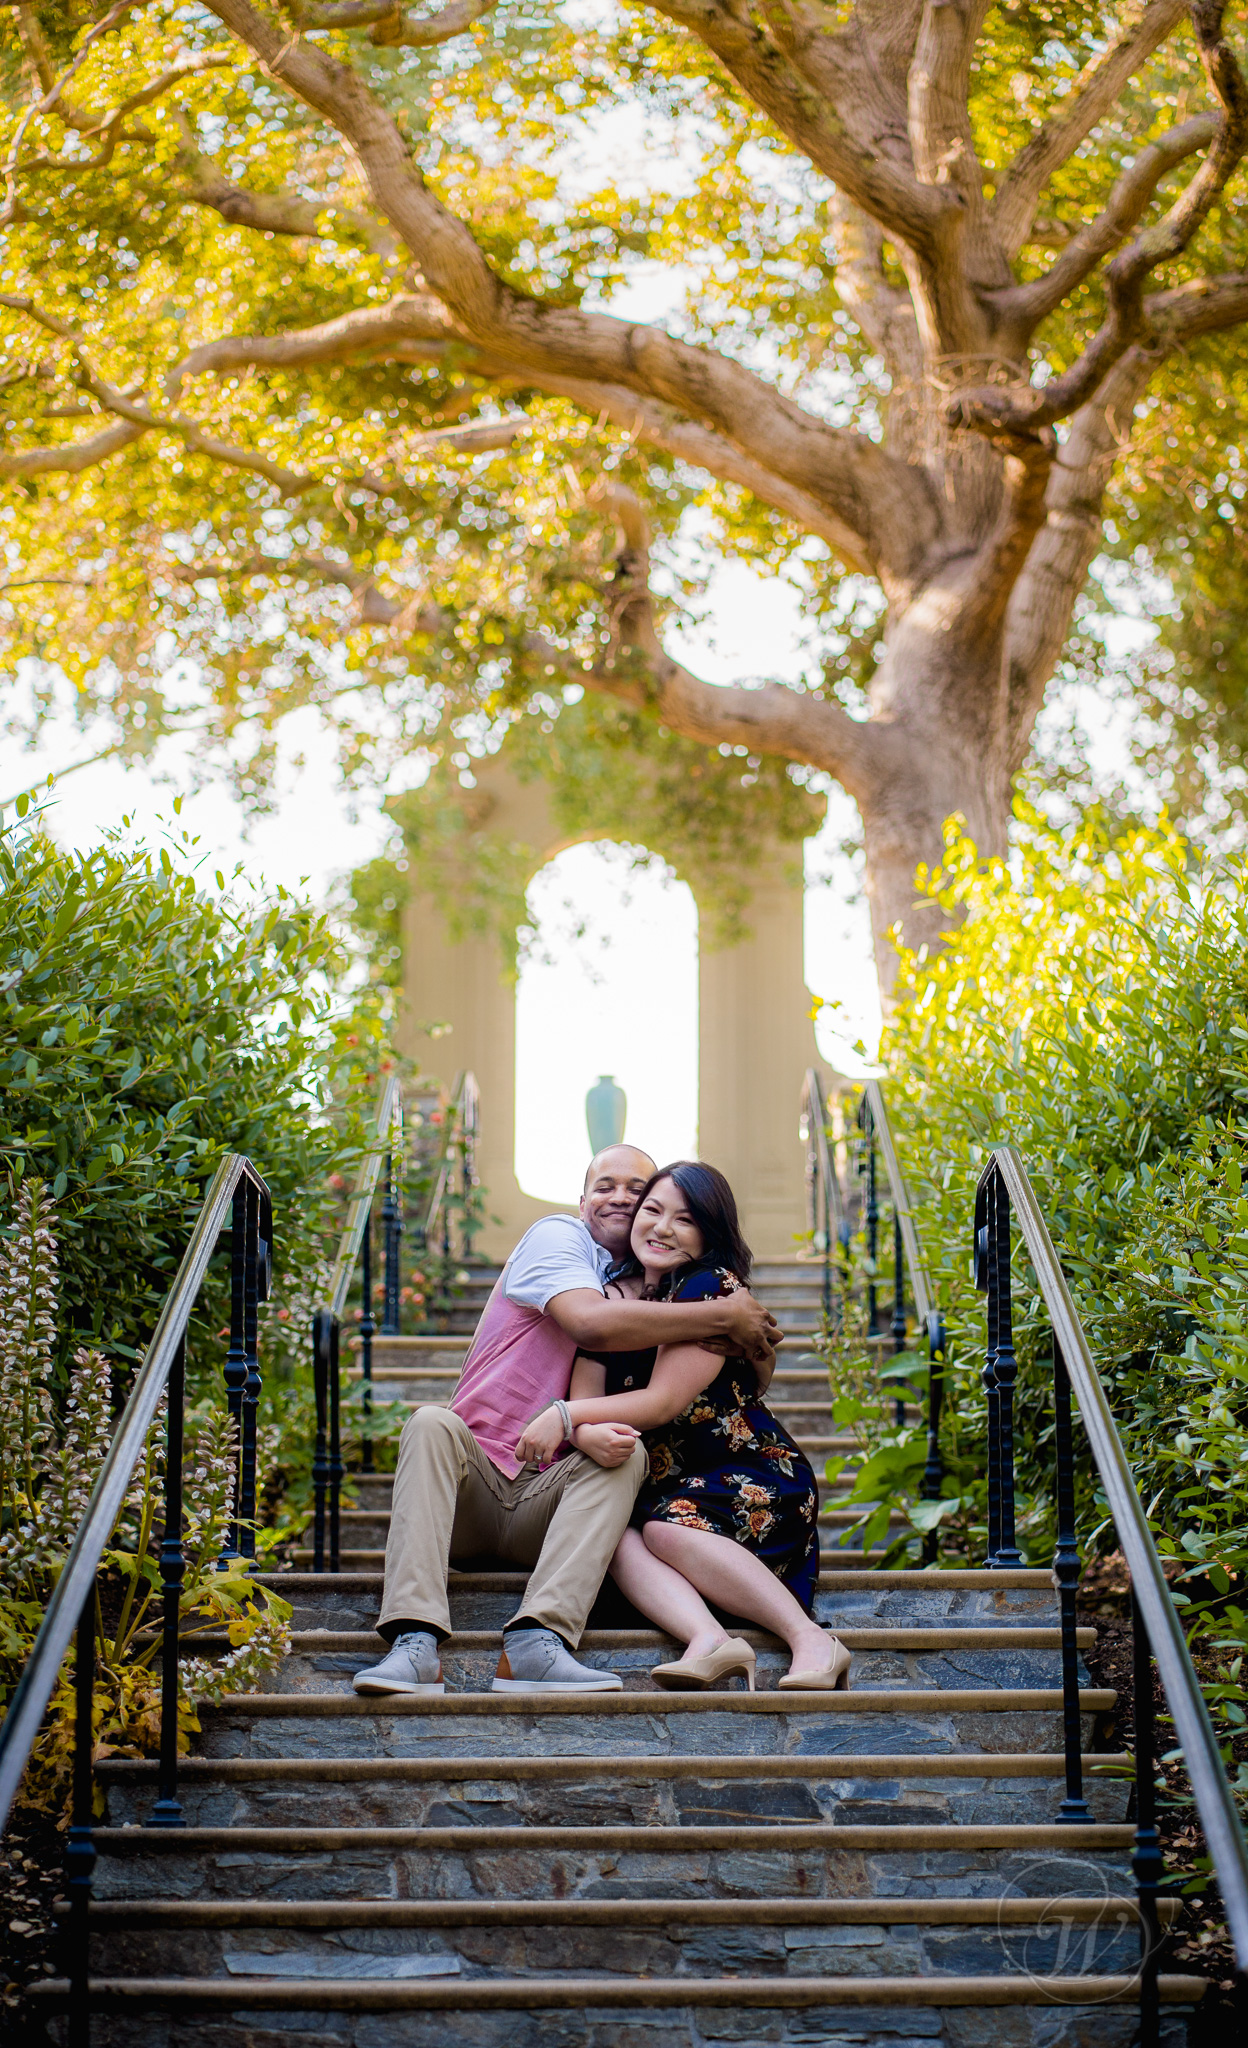 2019.06.16_Mosara-Brandon_Engagement_15.jpg